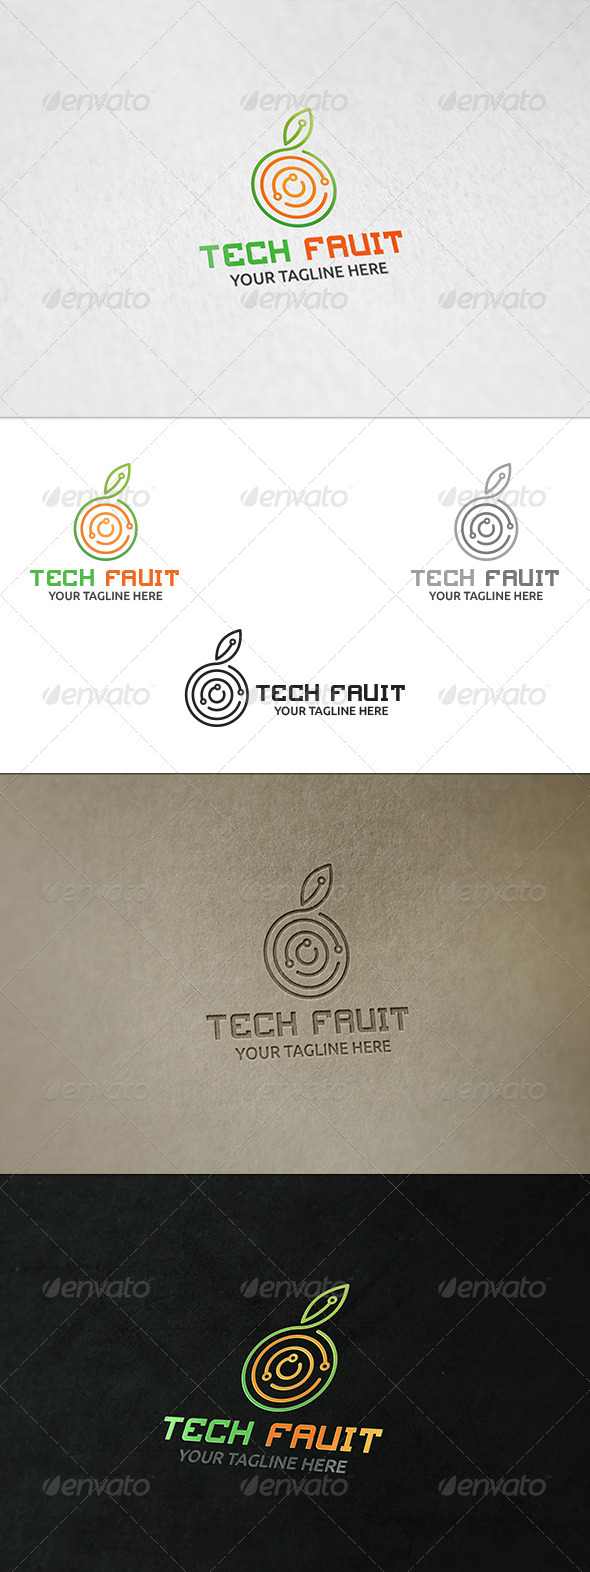 Tech Fruit Logo Template